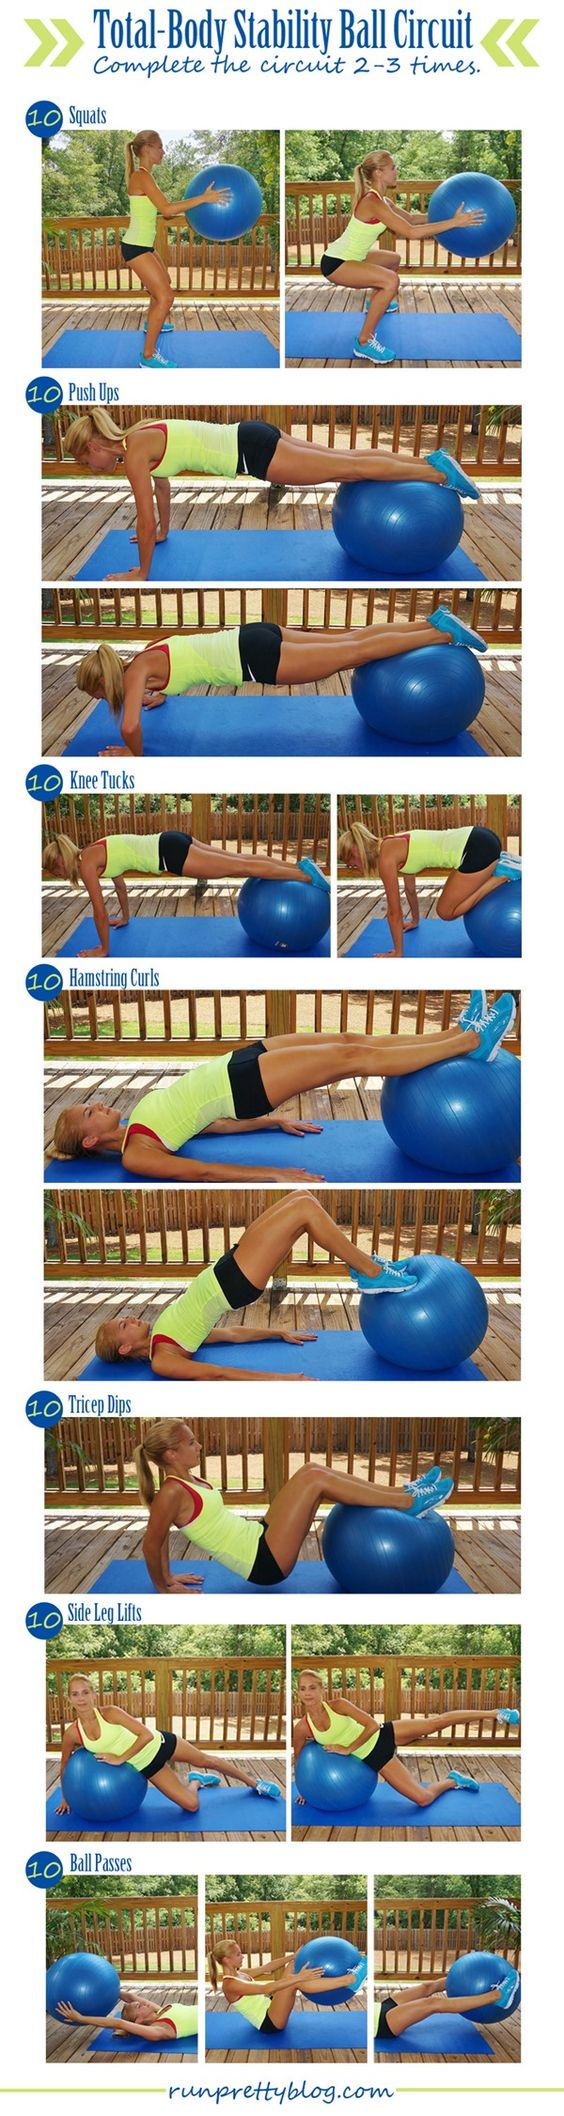 Total-Body Stability Ball Circuit Workout via Run Pretty